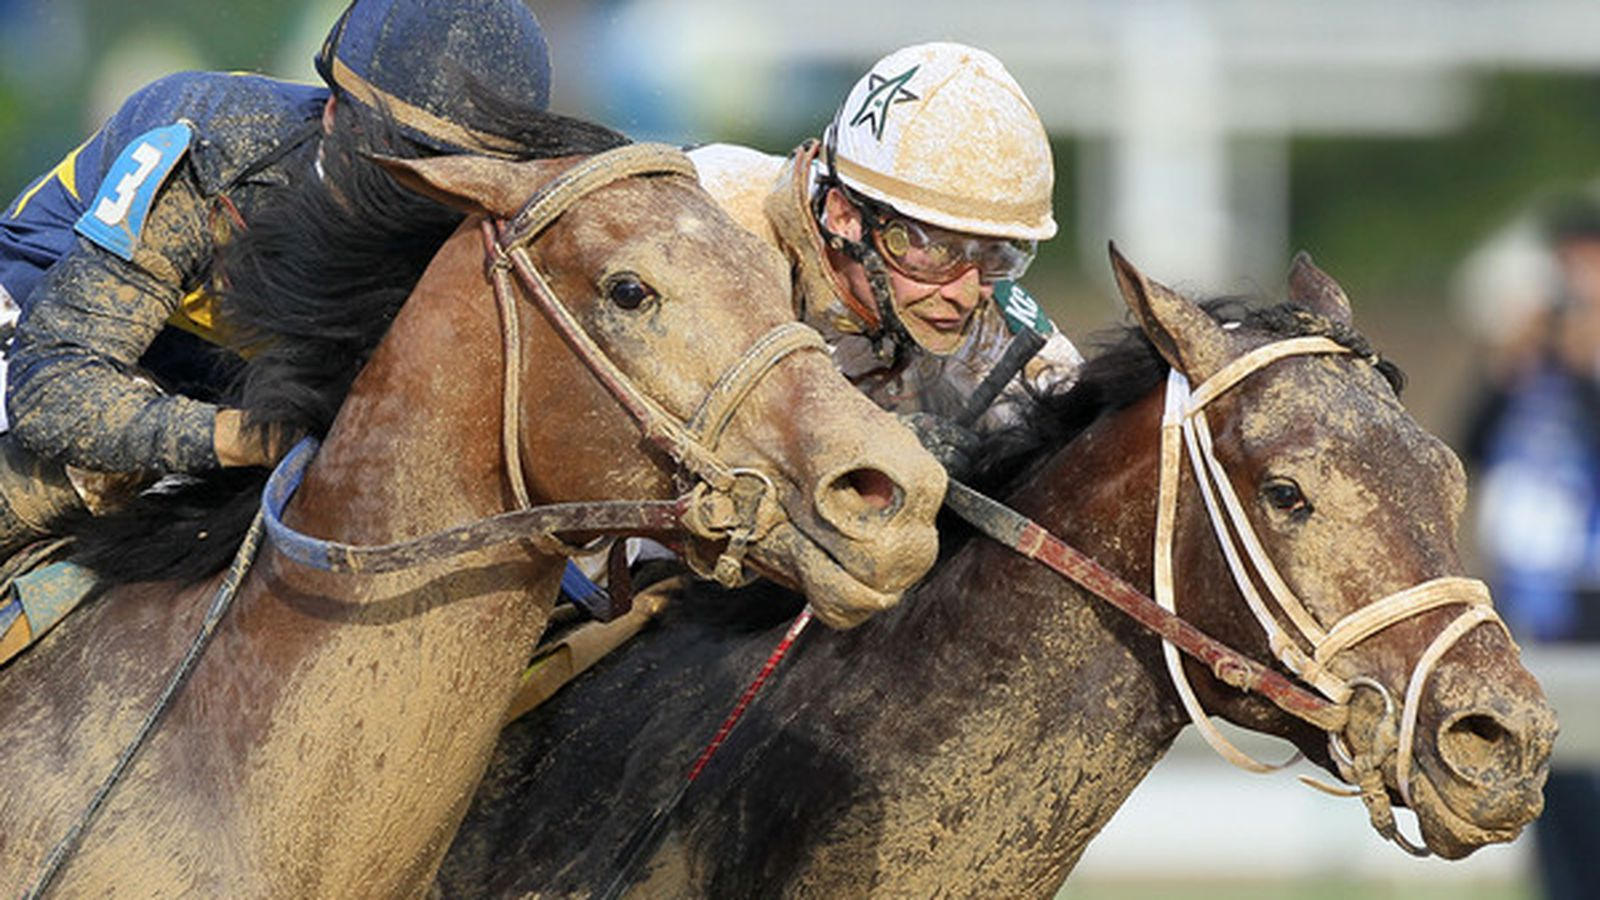 Kentucky Derby The Oaks Derby Double Since 2000 And